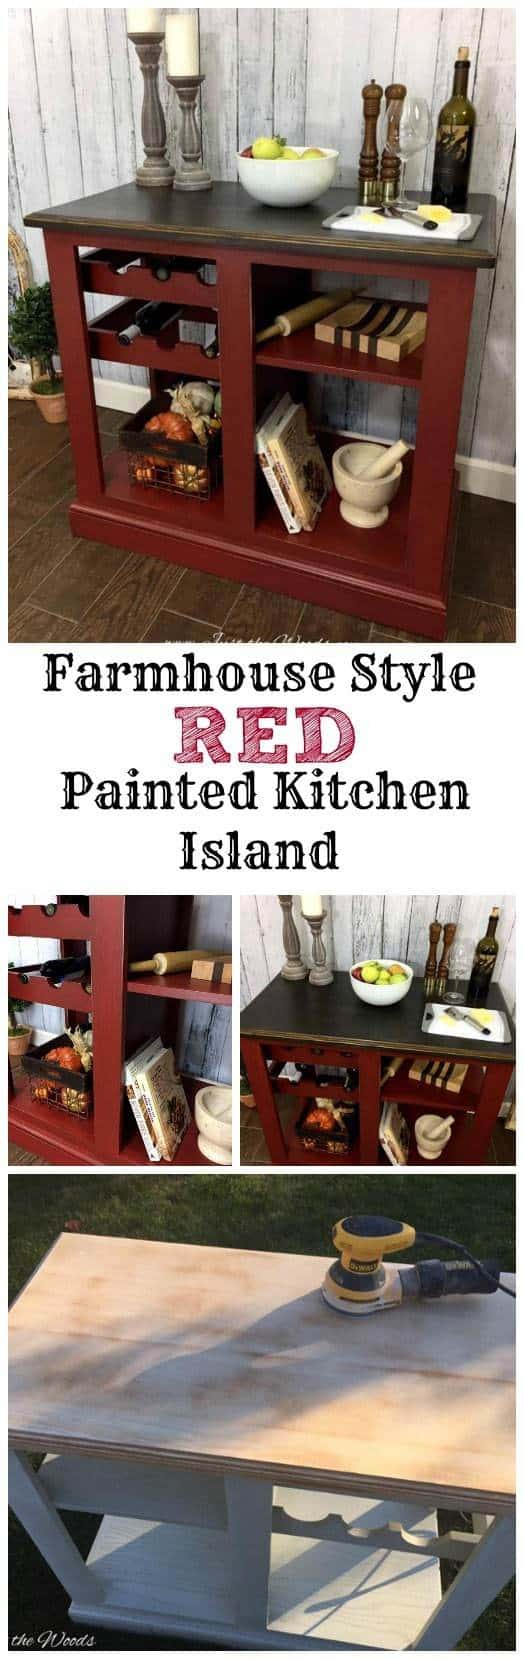 Farmhouse Style Red Painted Kitchen Island, red kitchen island, portable kitchen island